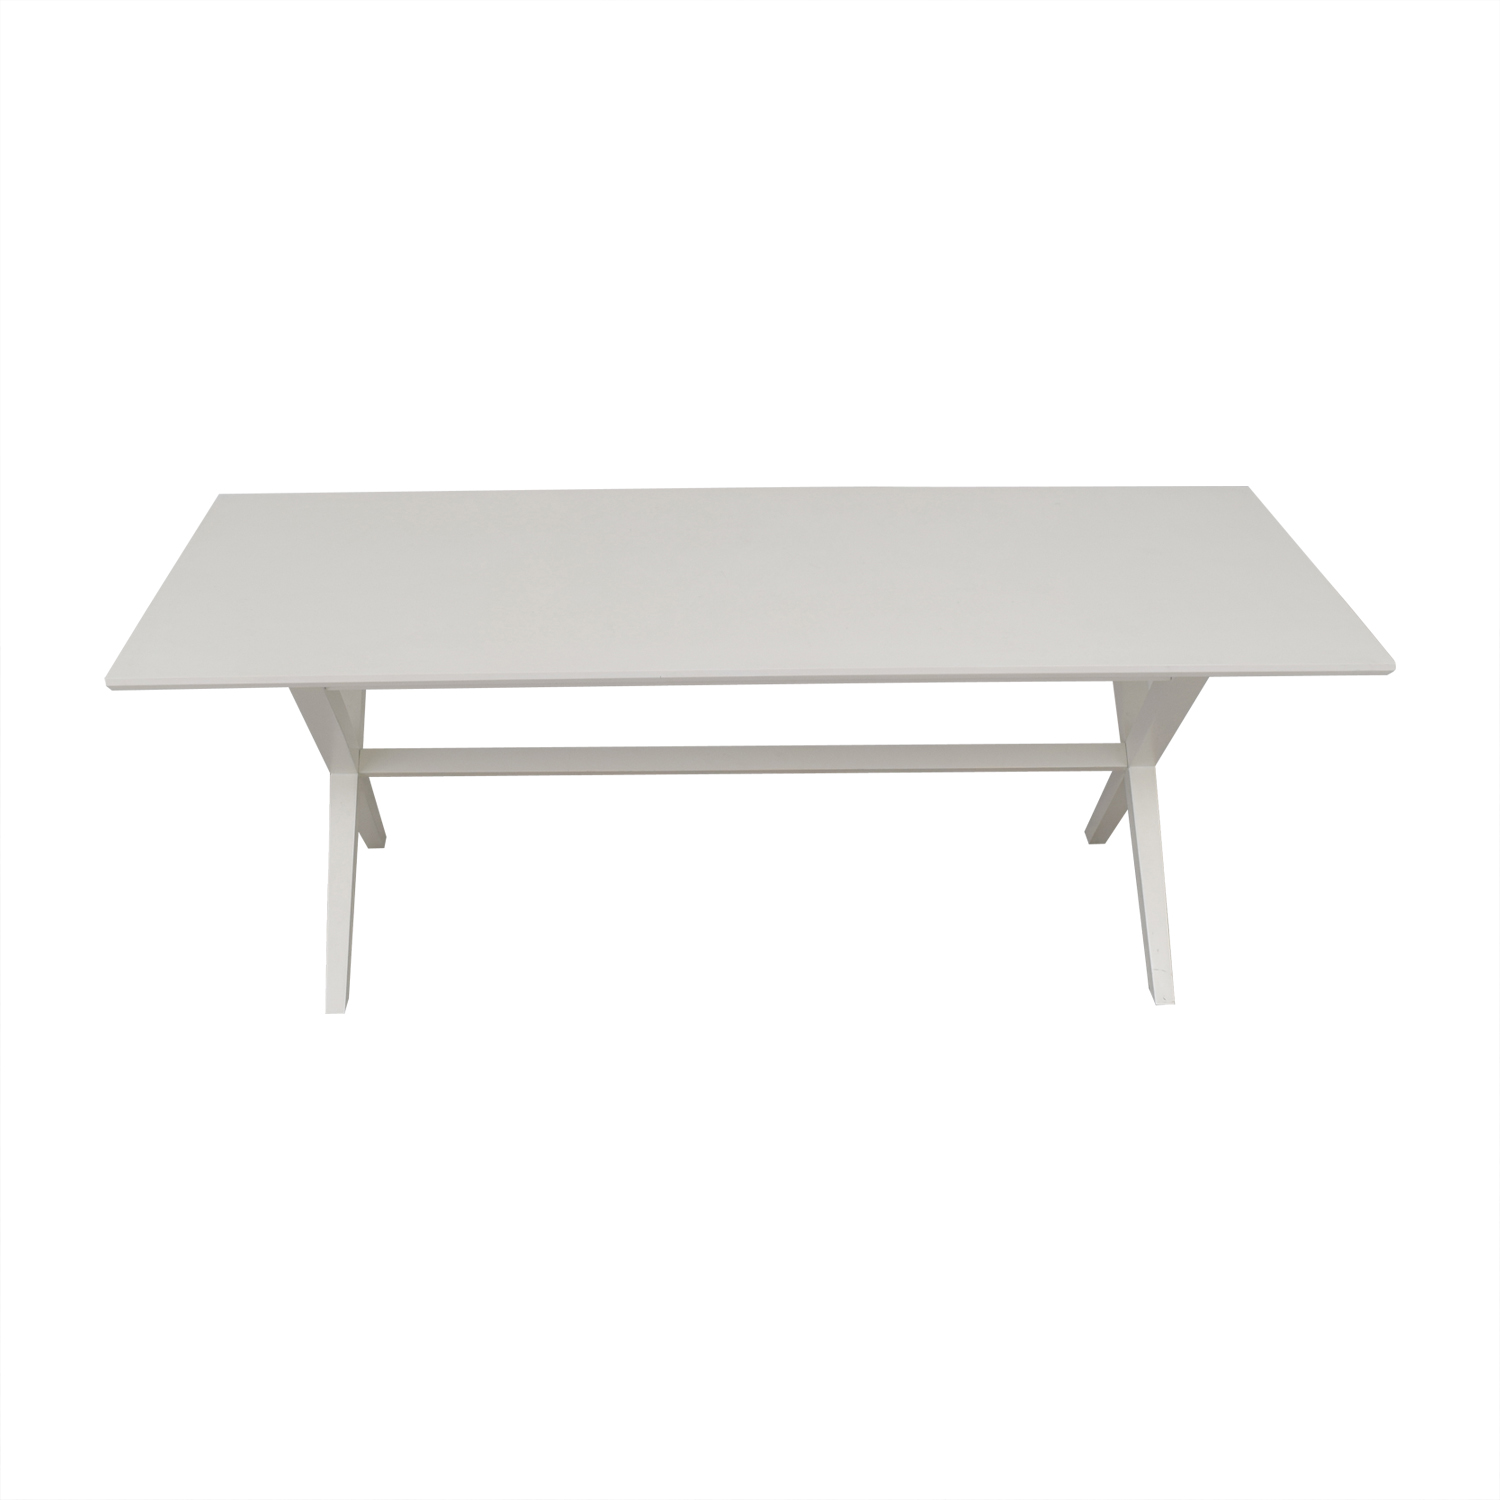 shop Crate & Barrel Crate & Barrel White Wood Dining Table online